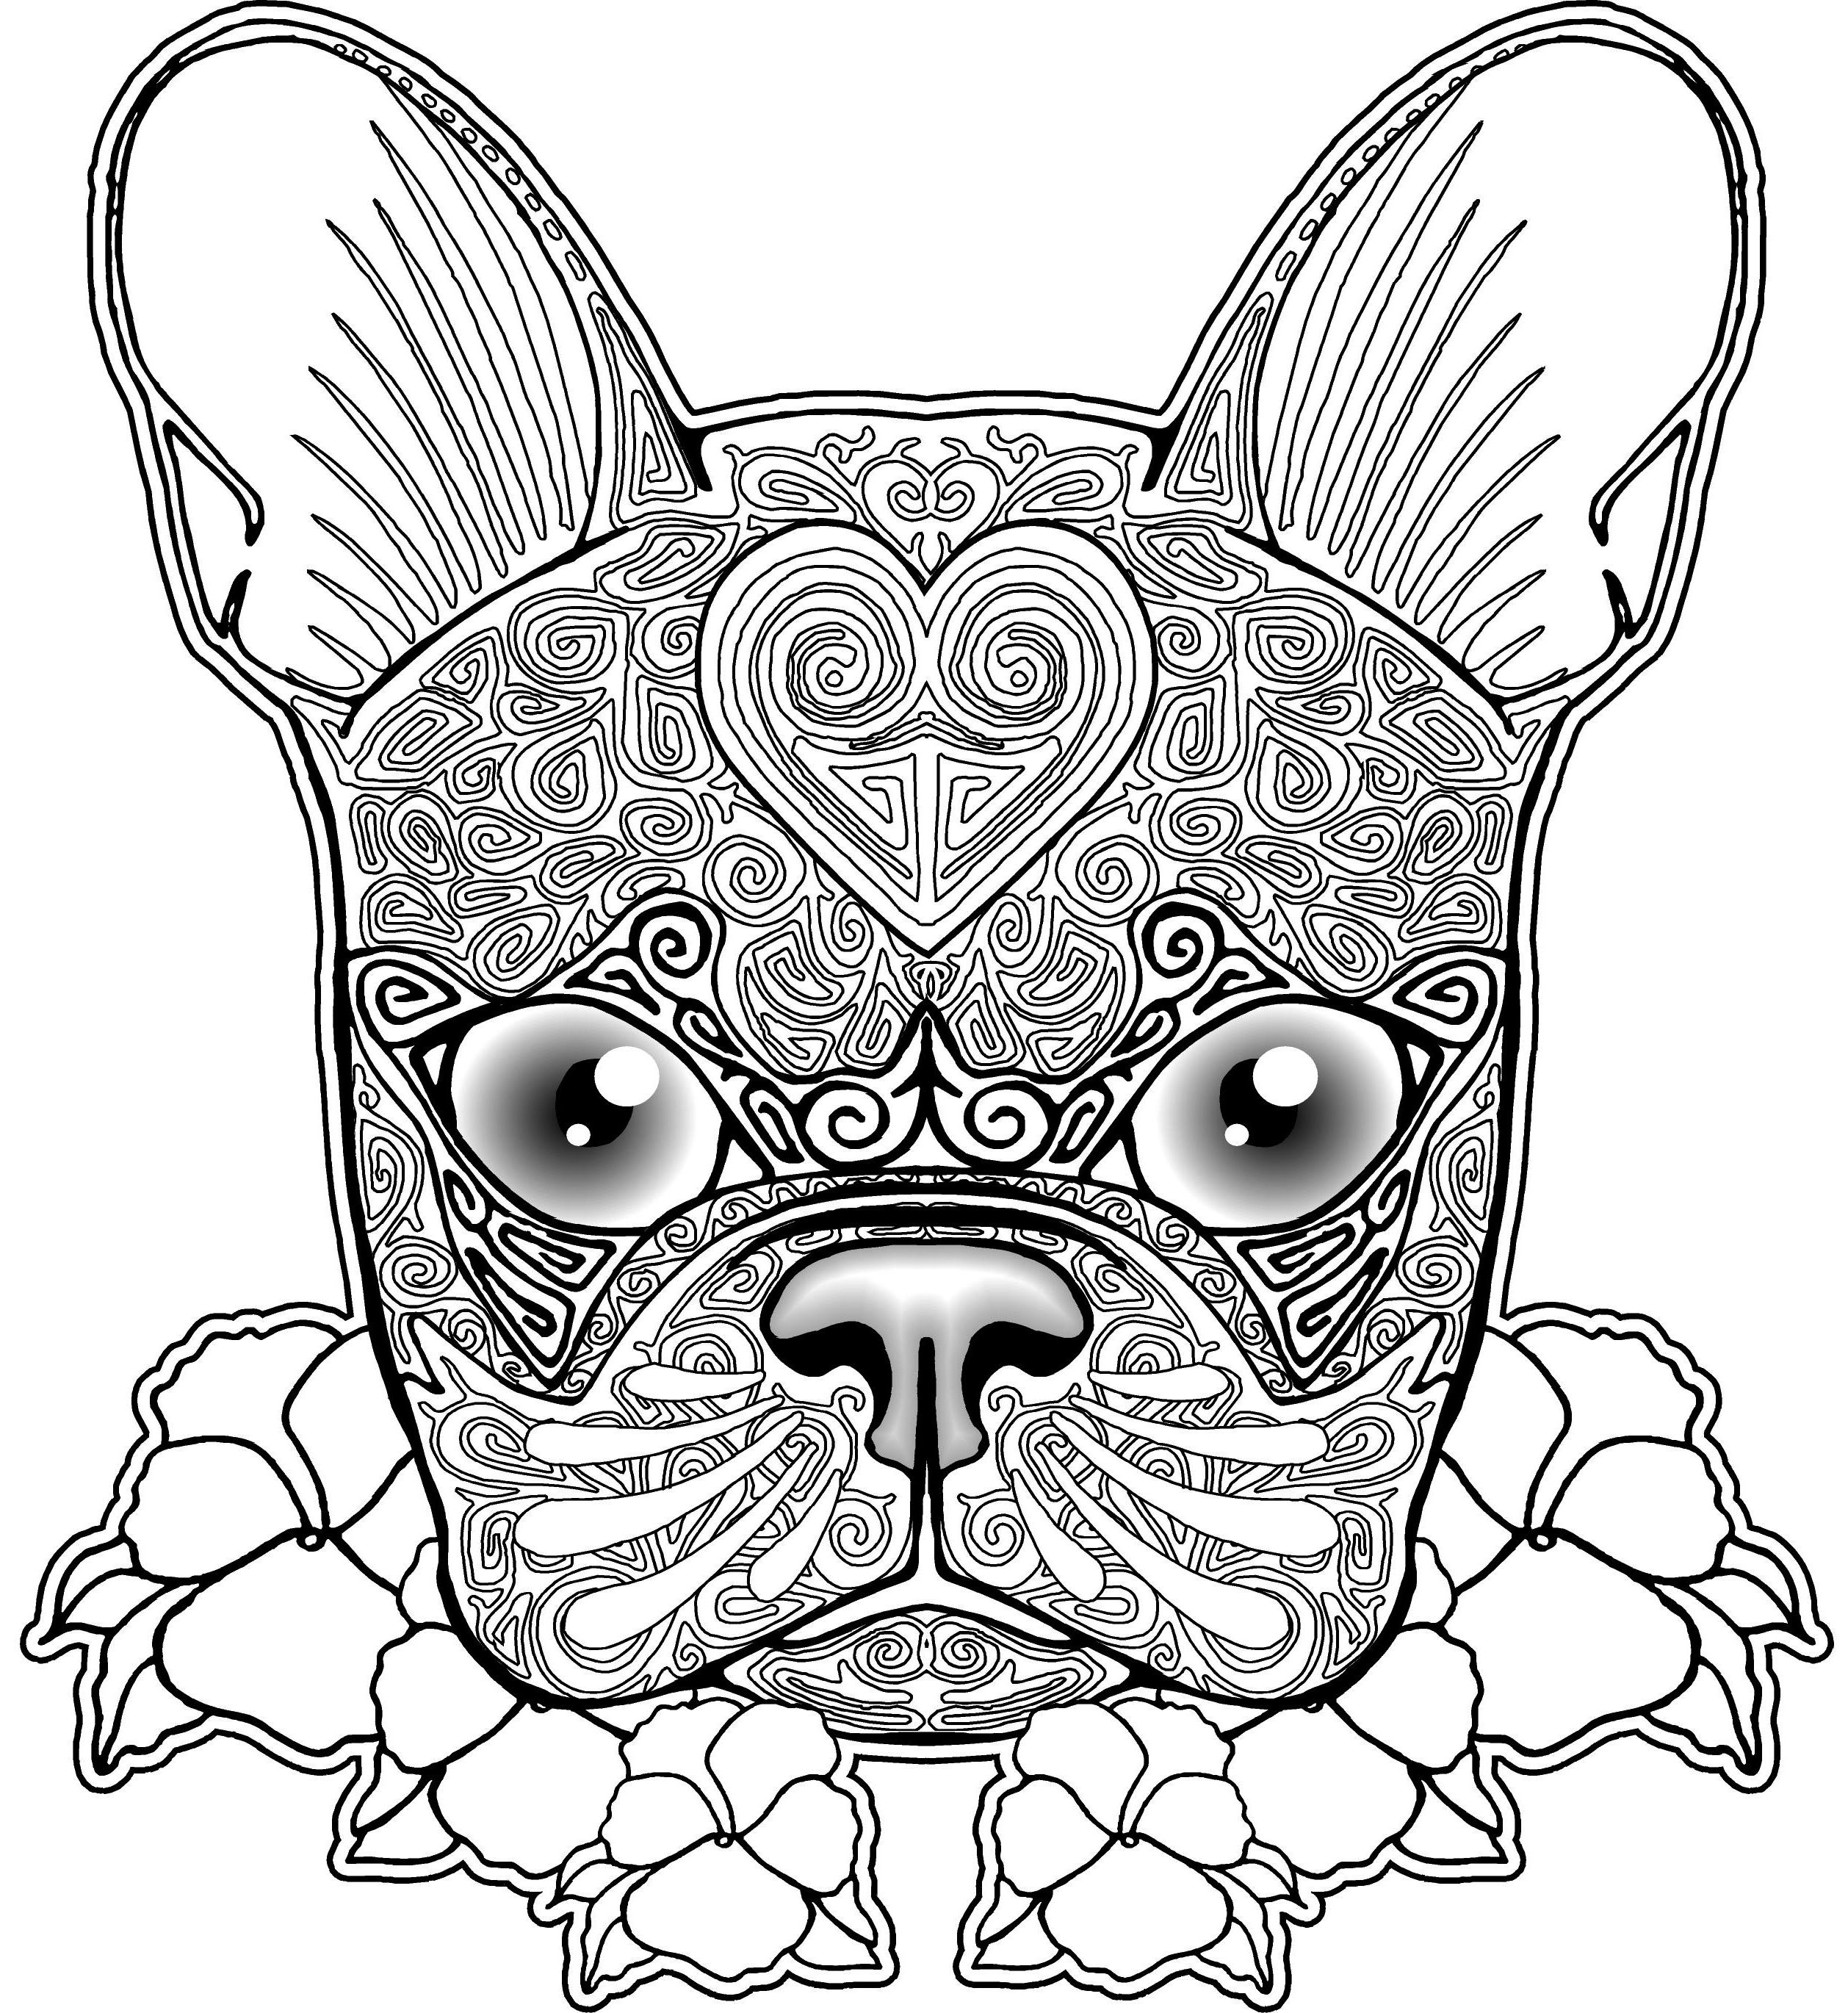 dogs pictures to print dalmatian dog coloring page at getcoloringscom free dogs pictures to print